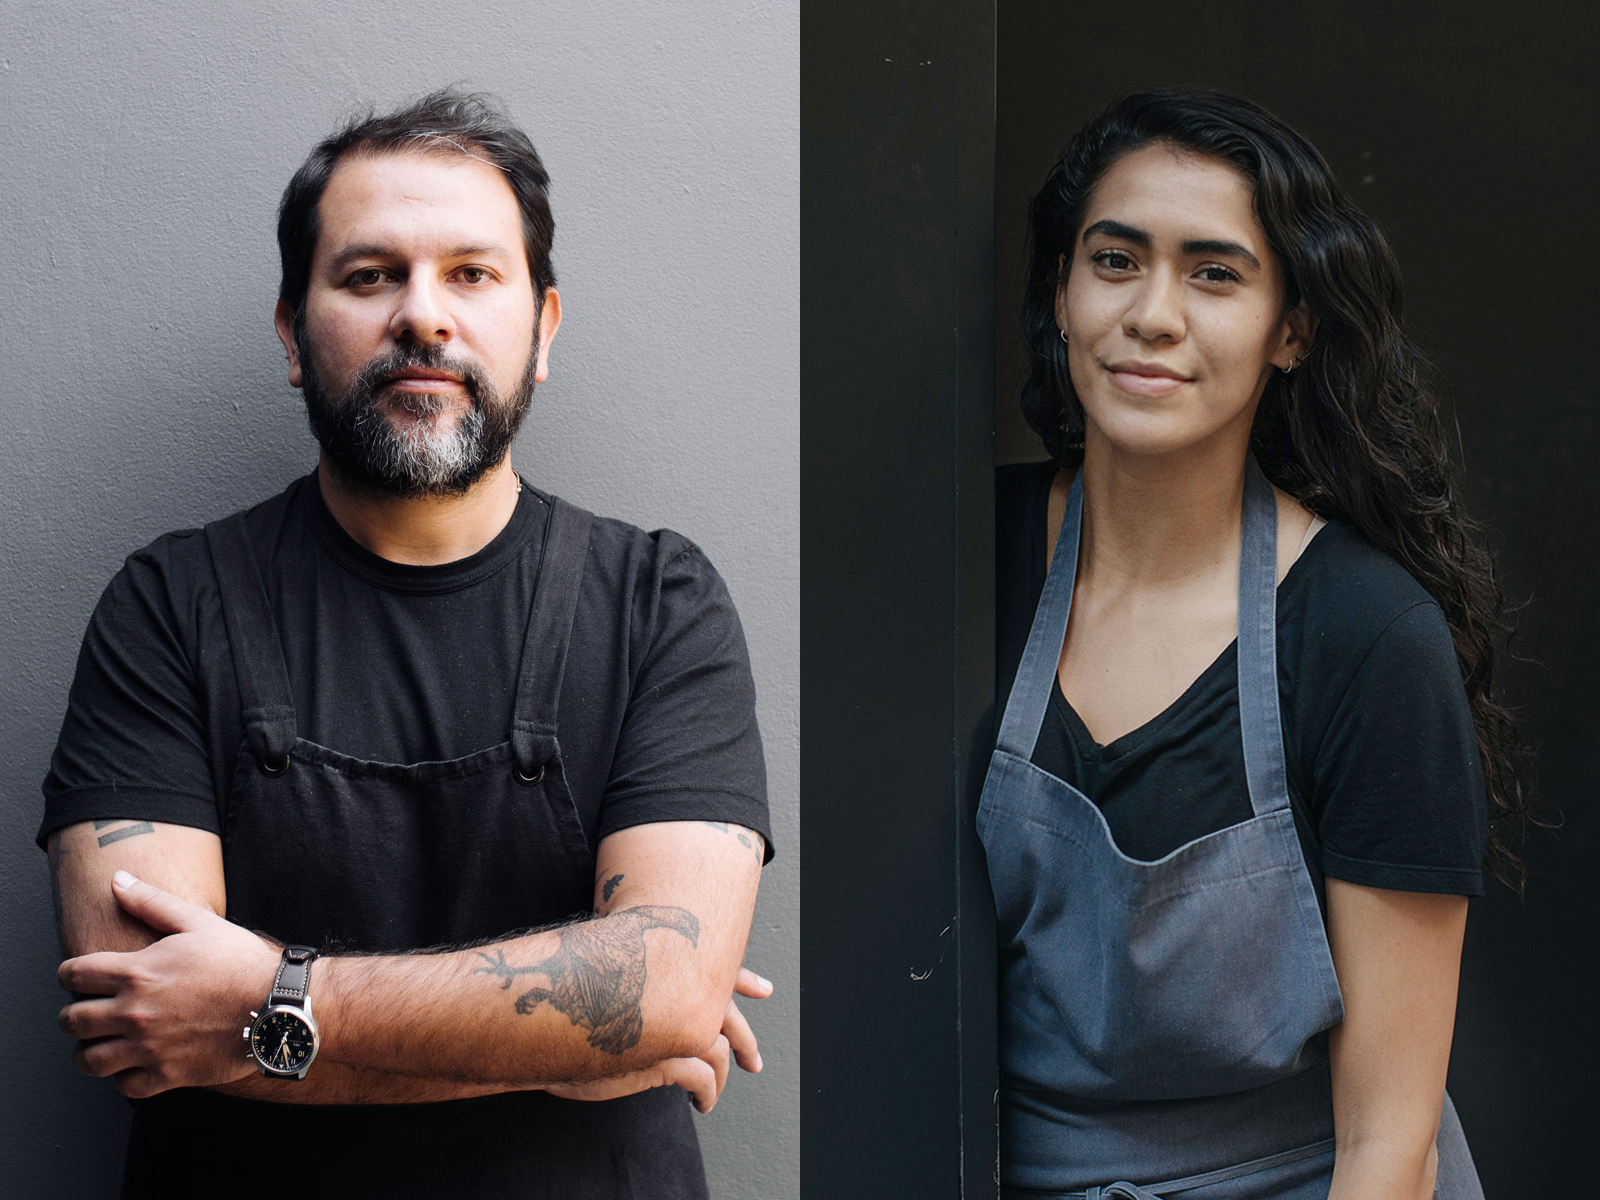 2020 Restaurant Openings: Enrique Olvera and Daniela Soto-Innes